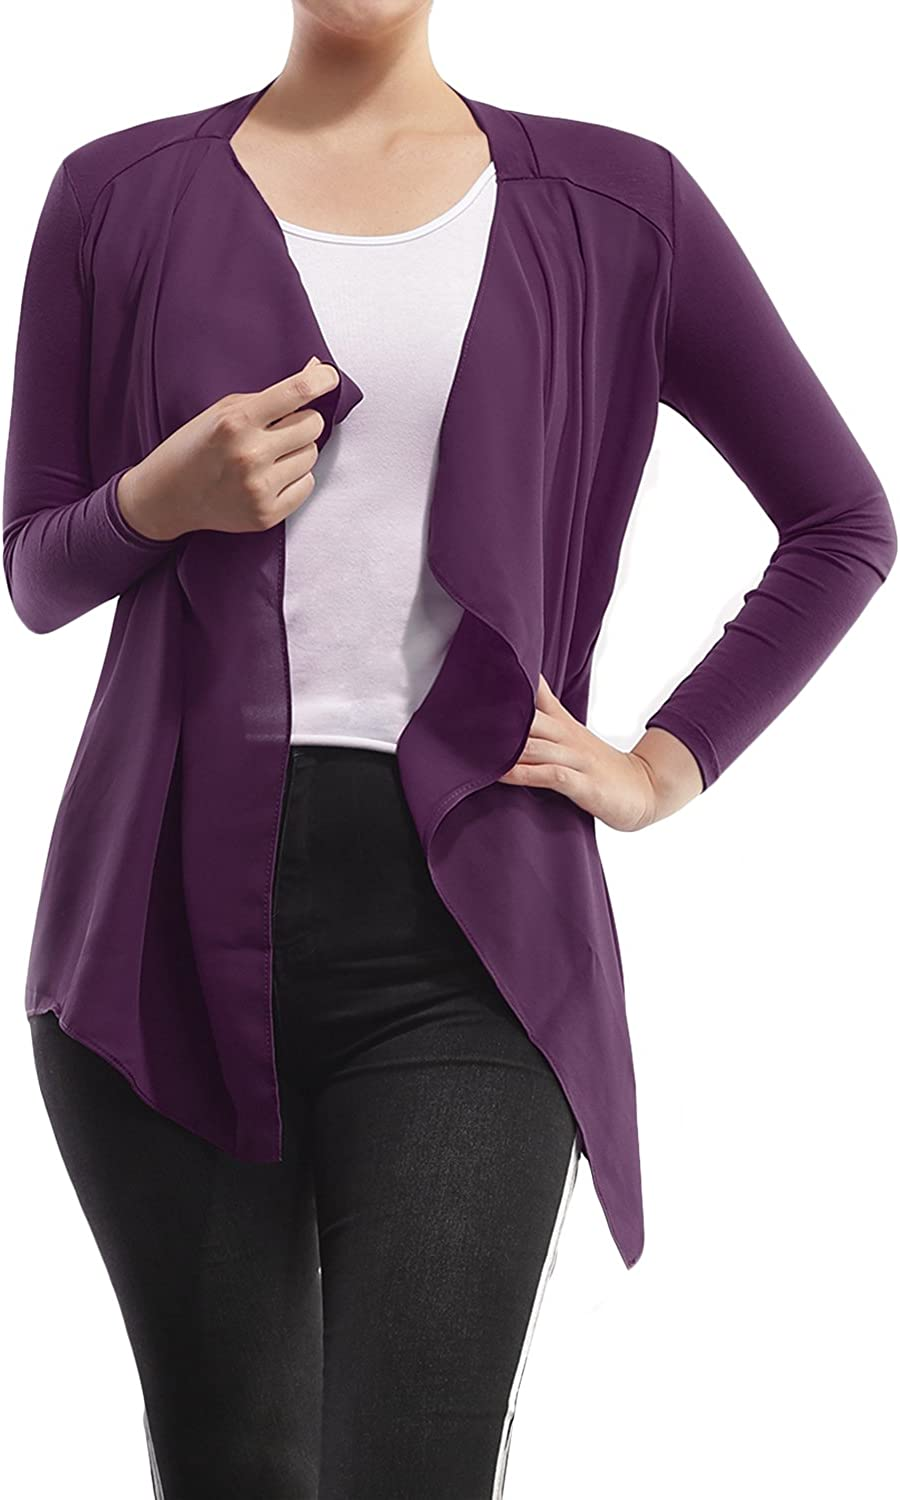 AMORE ALLFY Women's Solid Chiffon Front Long Sleeve Cardigan Eggplant X-Large